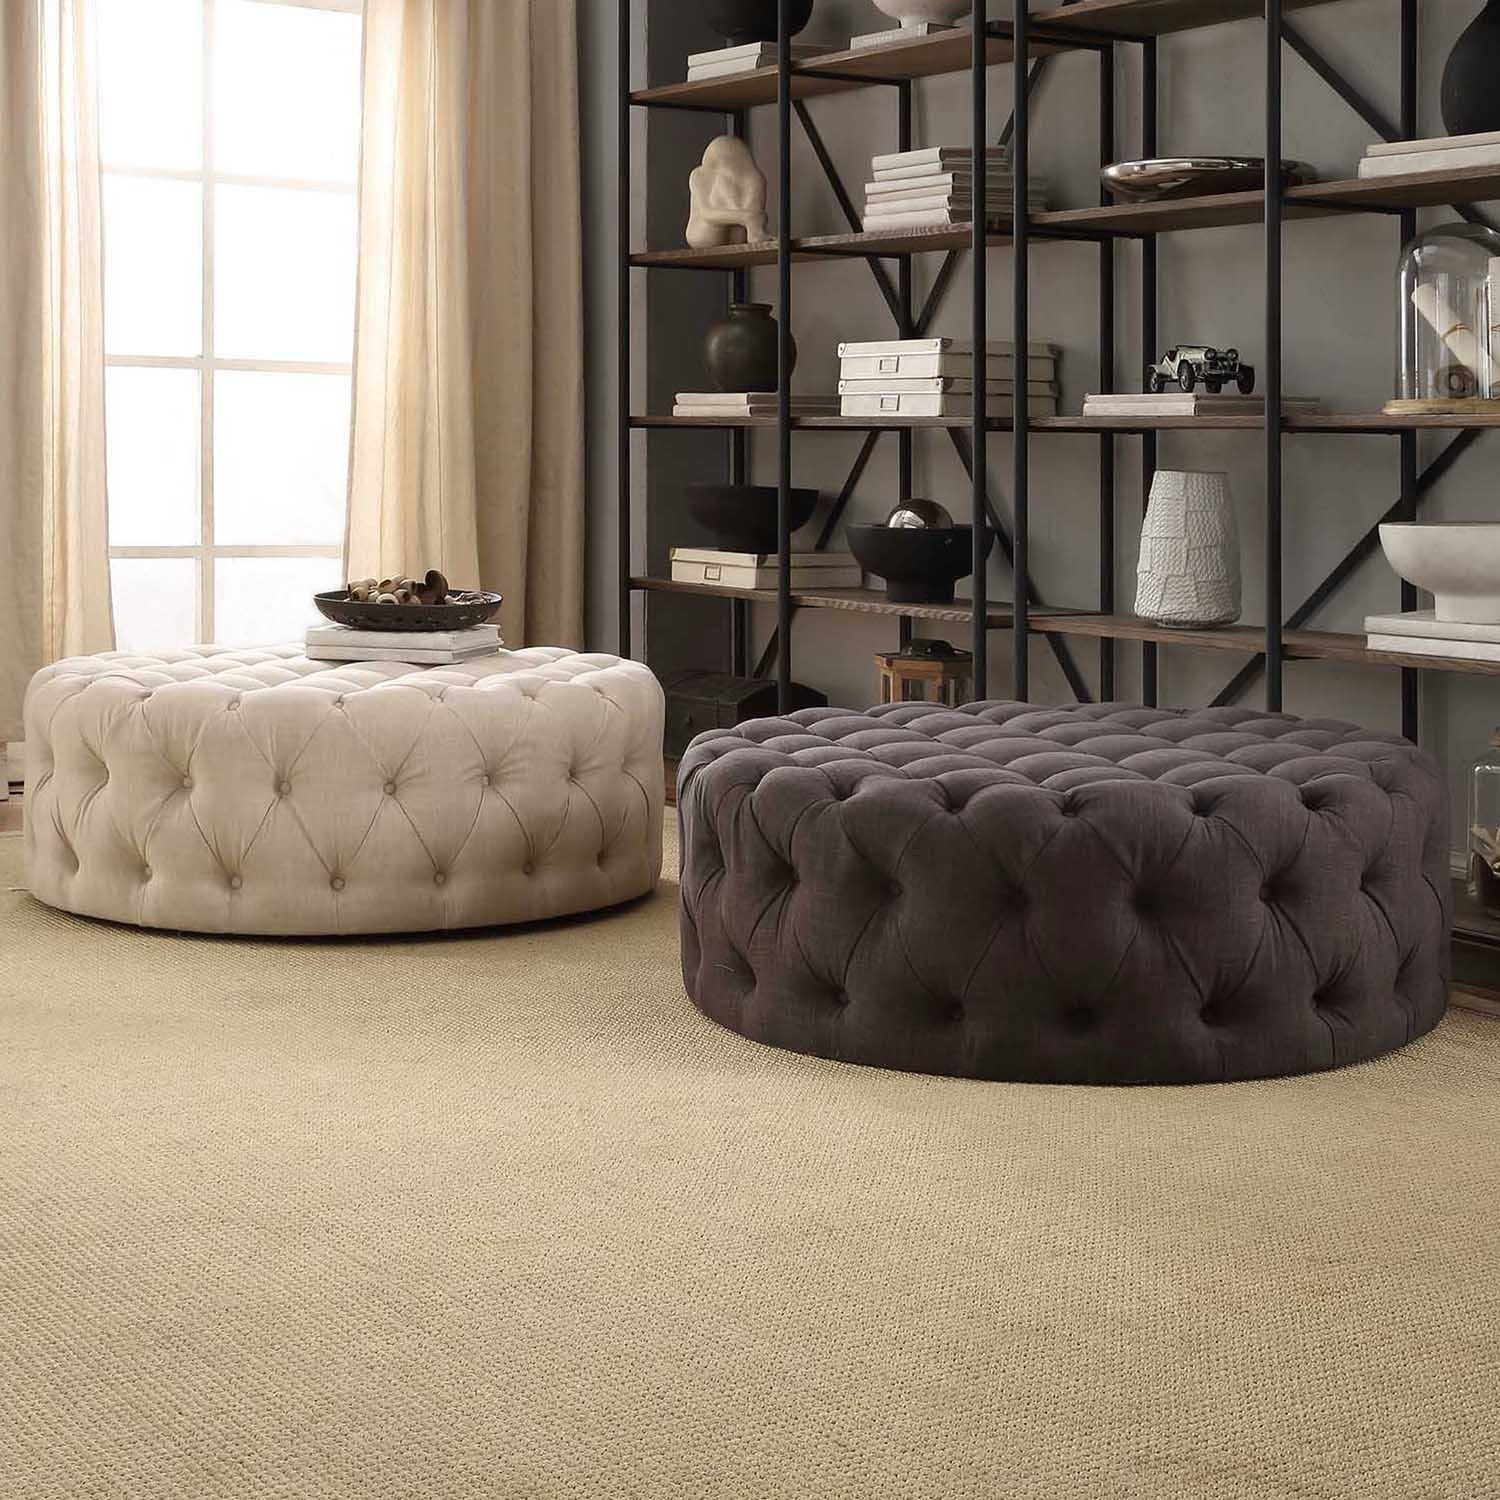 Knightsbridge round linen tufted cocktail ottoman with casters great room furniture Linen ottoman coffee table